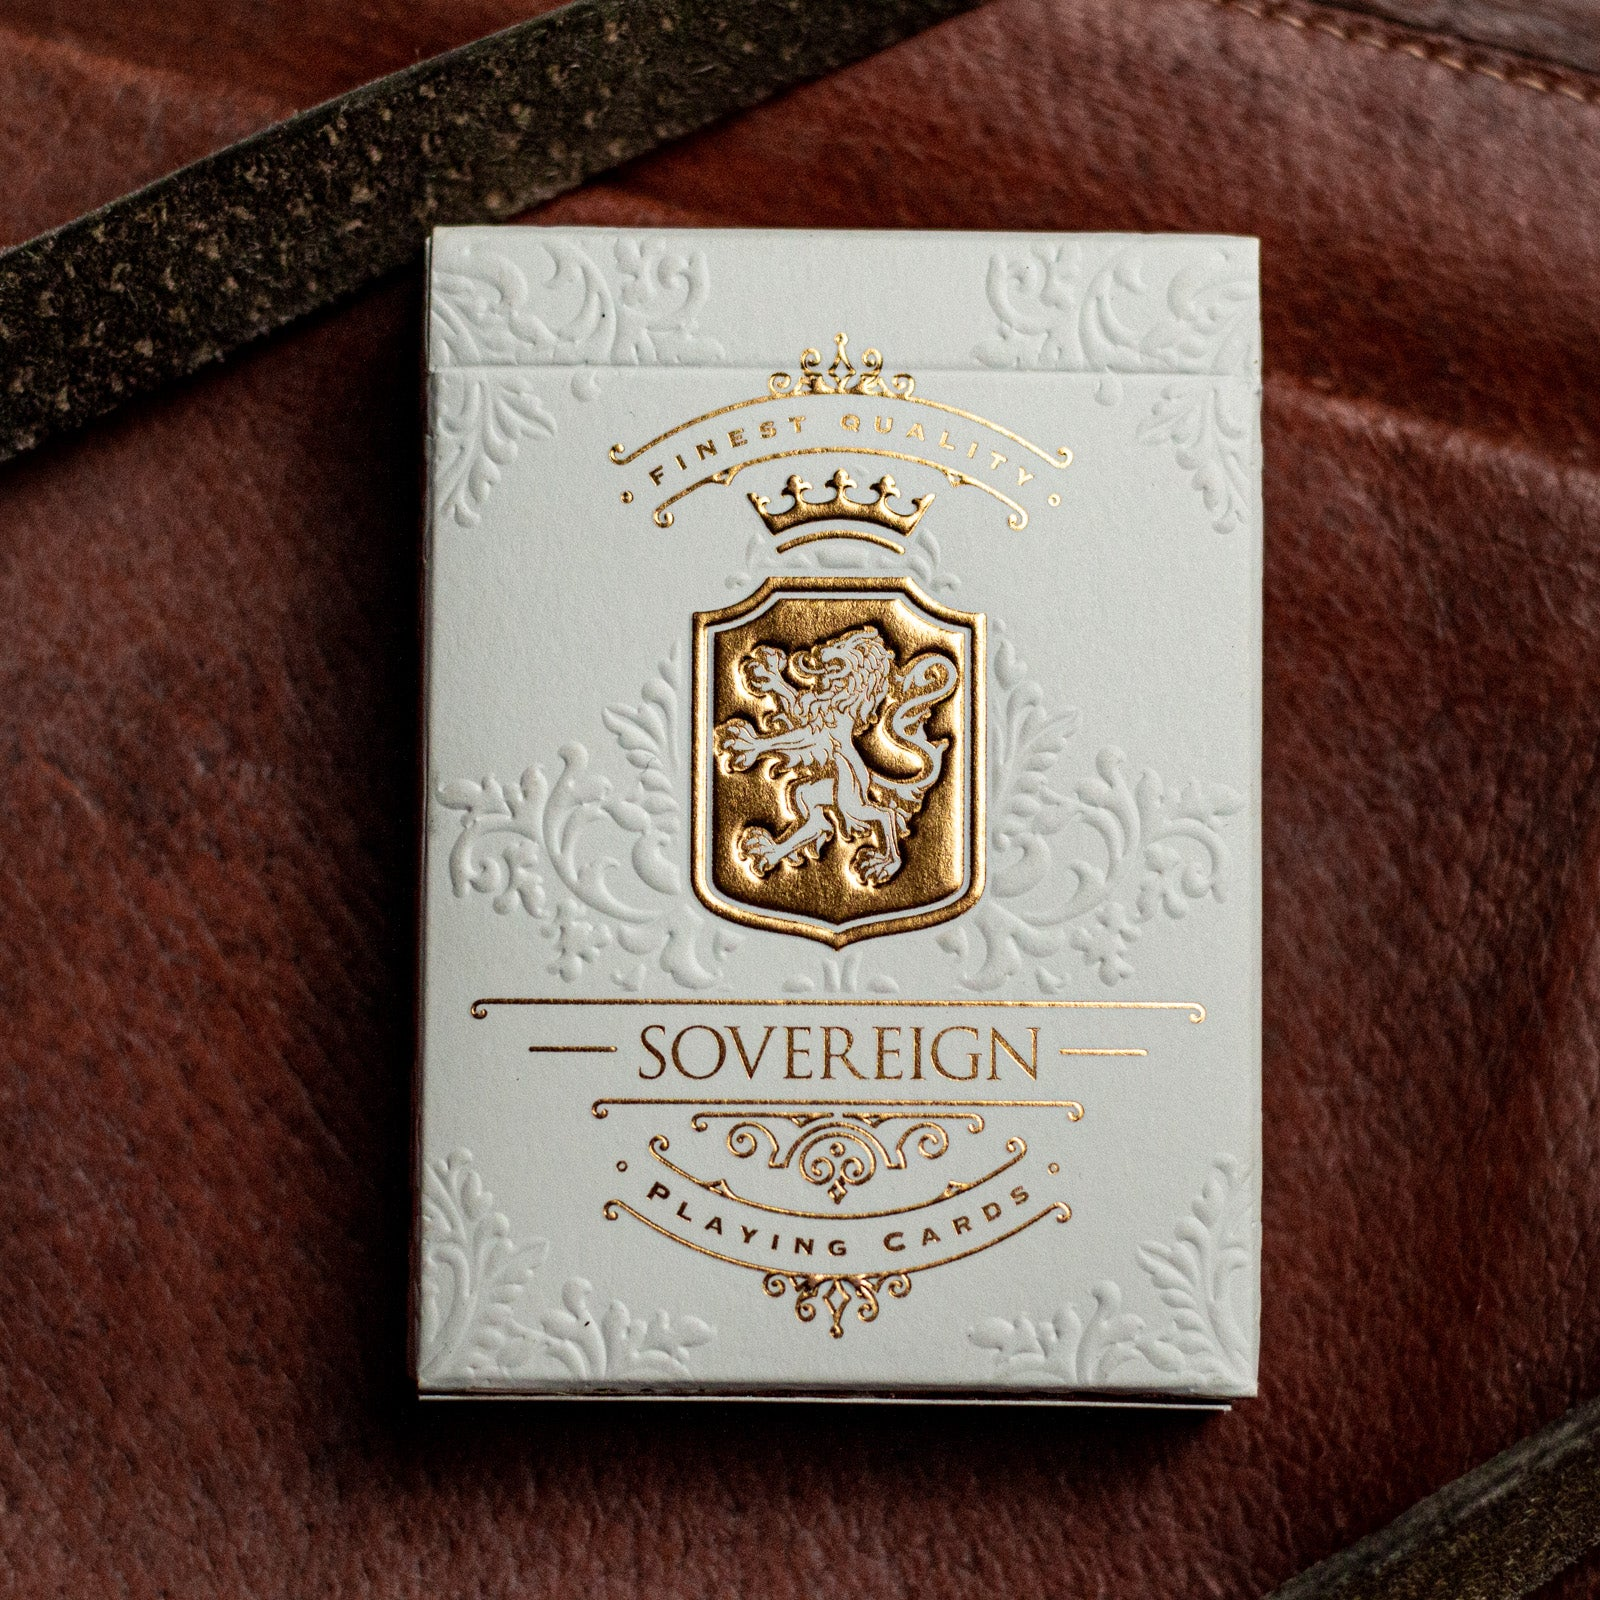 Sovereign Exquisite Edition